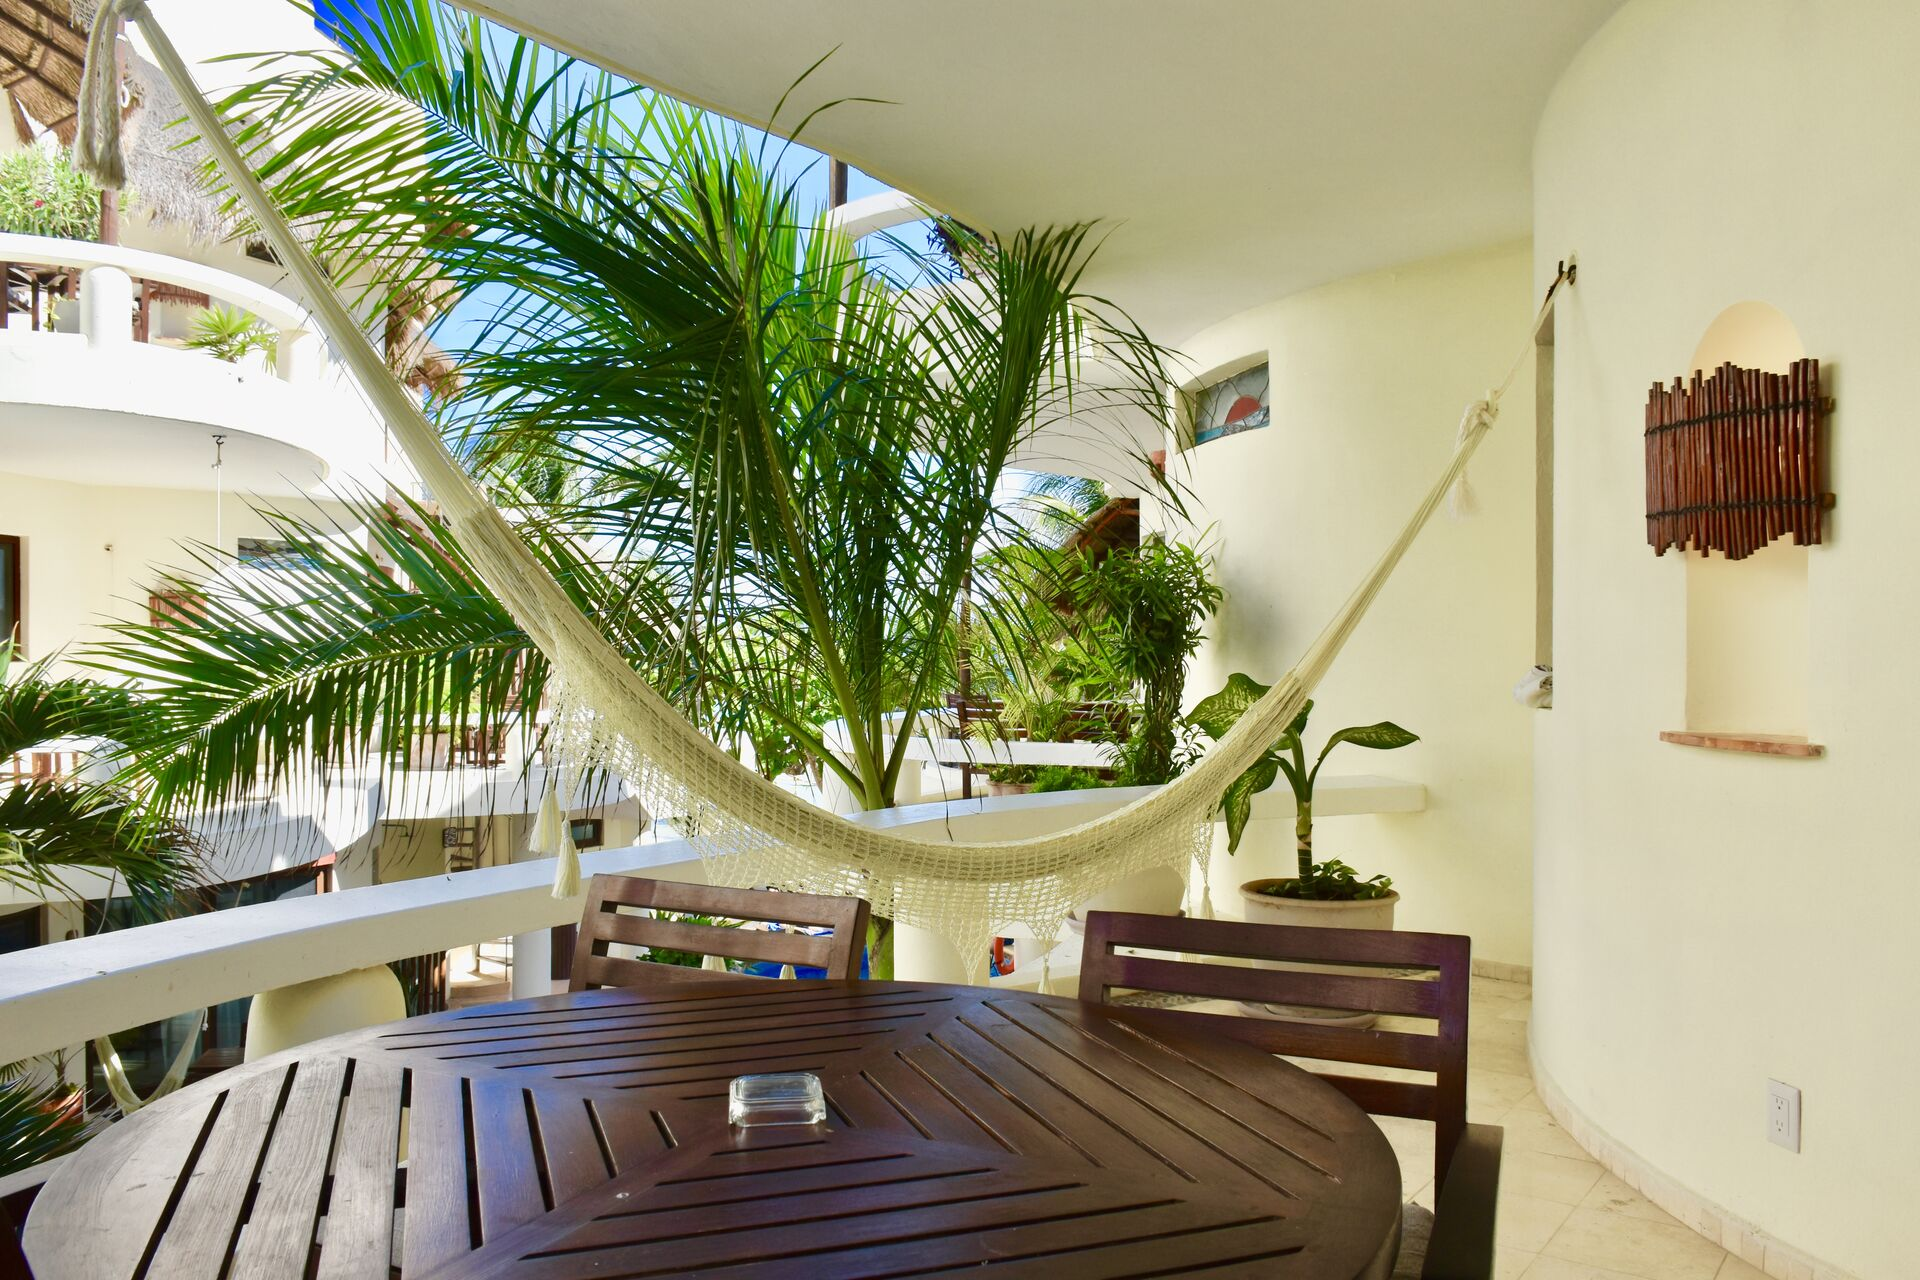 Large private balcony.